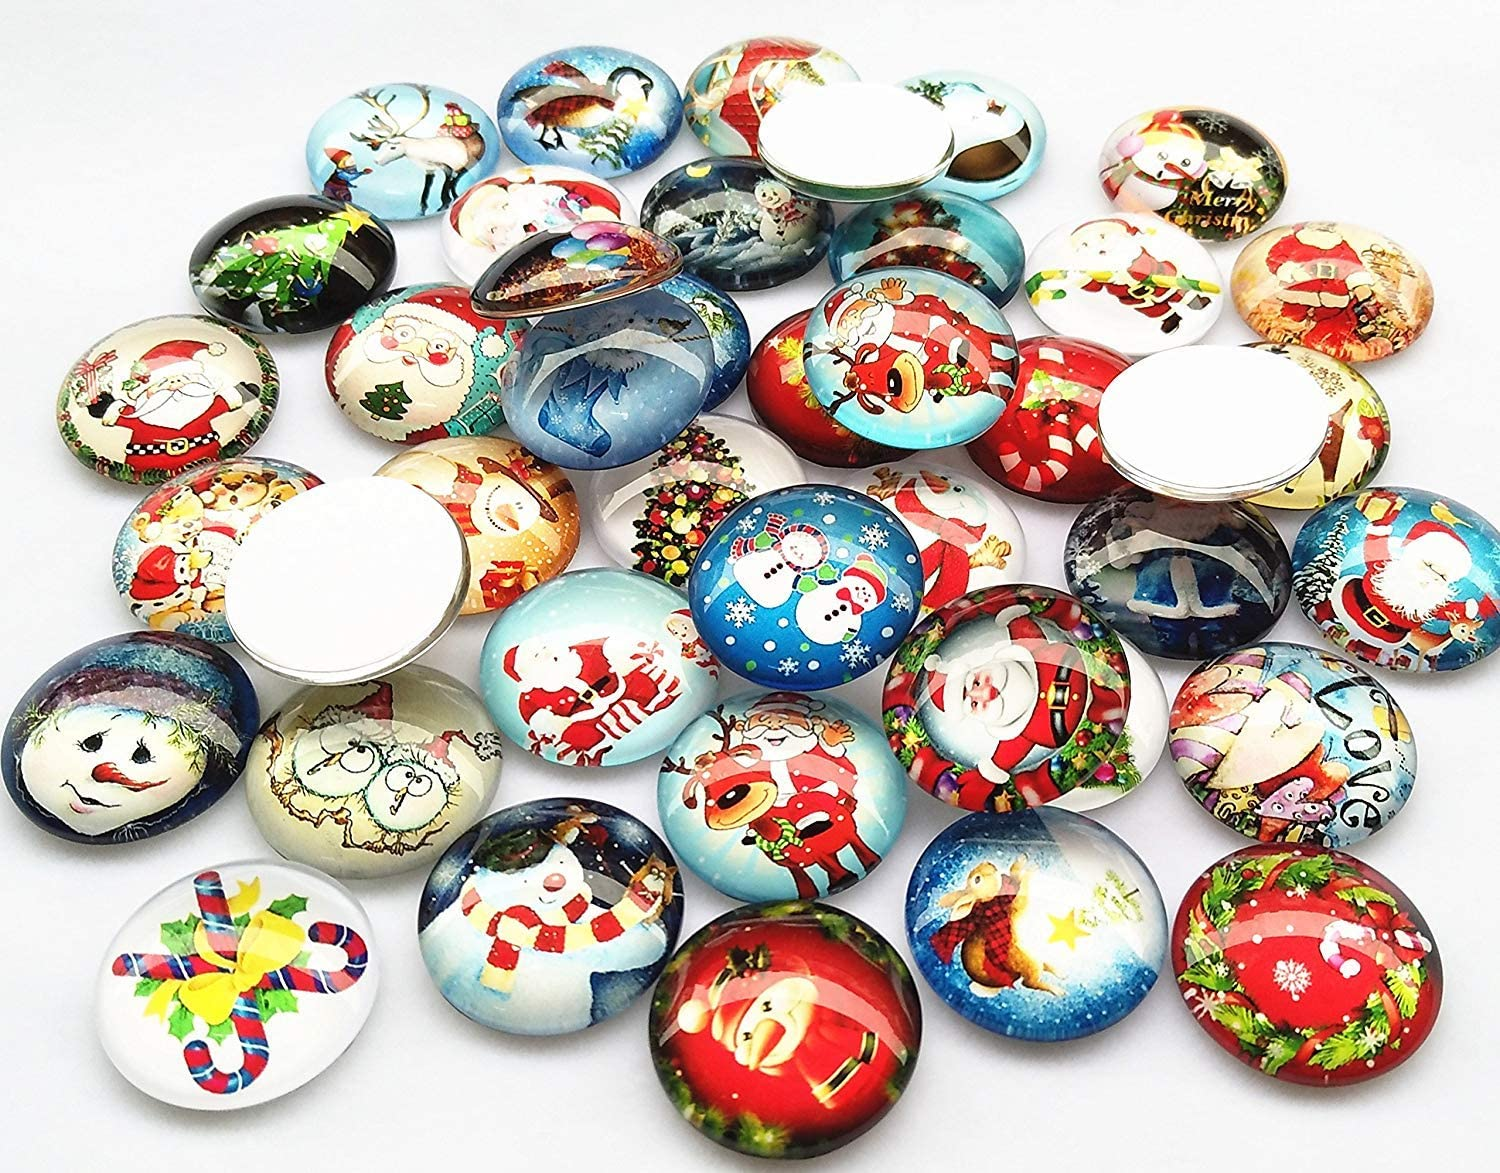 3//4 3//4 Assorted Styles Christmas Snow Man Tree Claus Jingle Bell Glass Button Flatback Flat Backs Button Glass Cameo Cabochon Phonecover Scrapbooking DIY Craft 20mm Libiline 30pcs 20mm